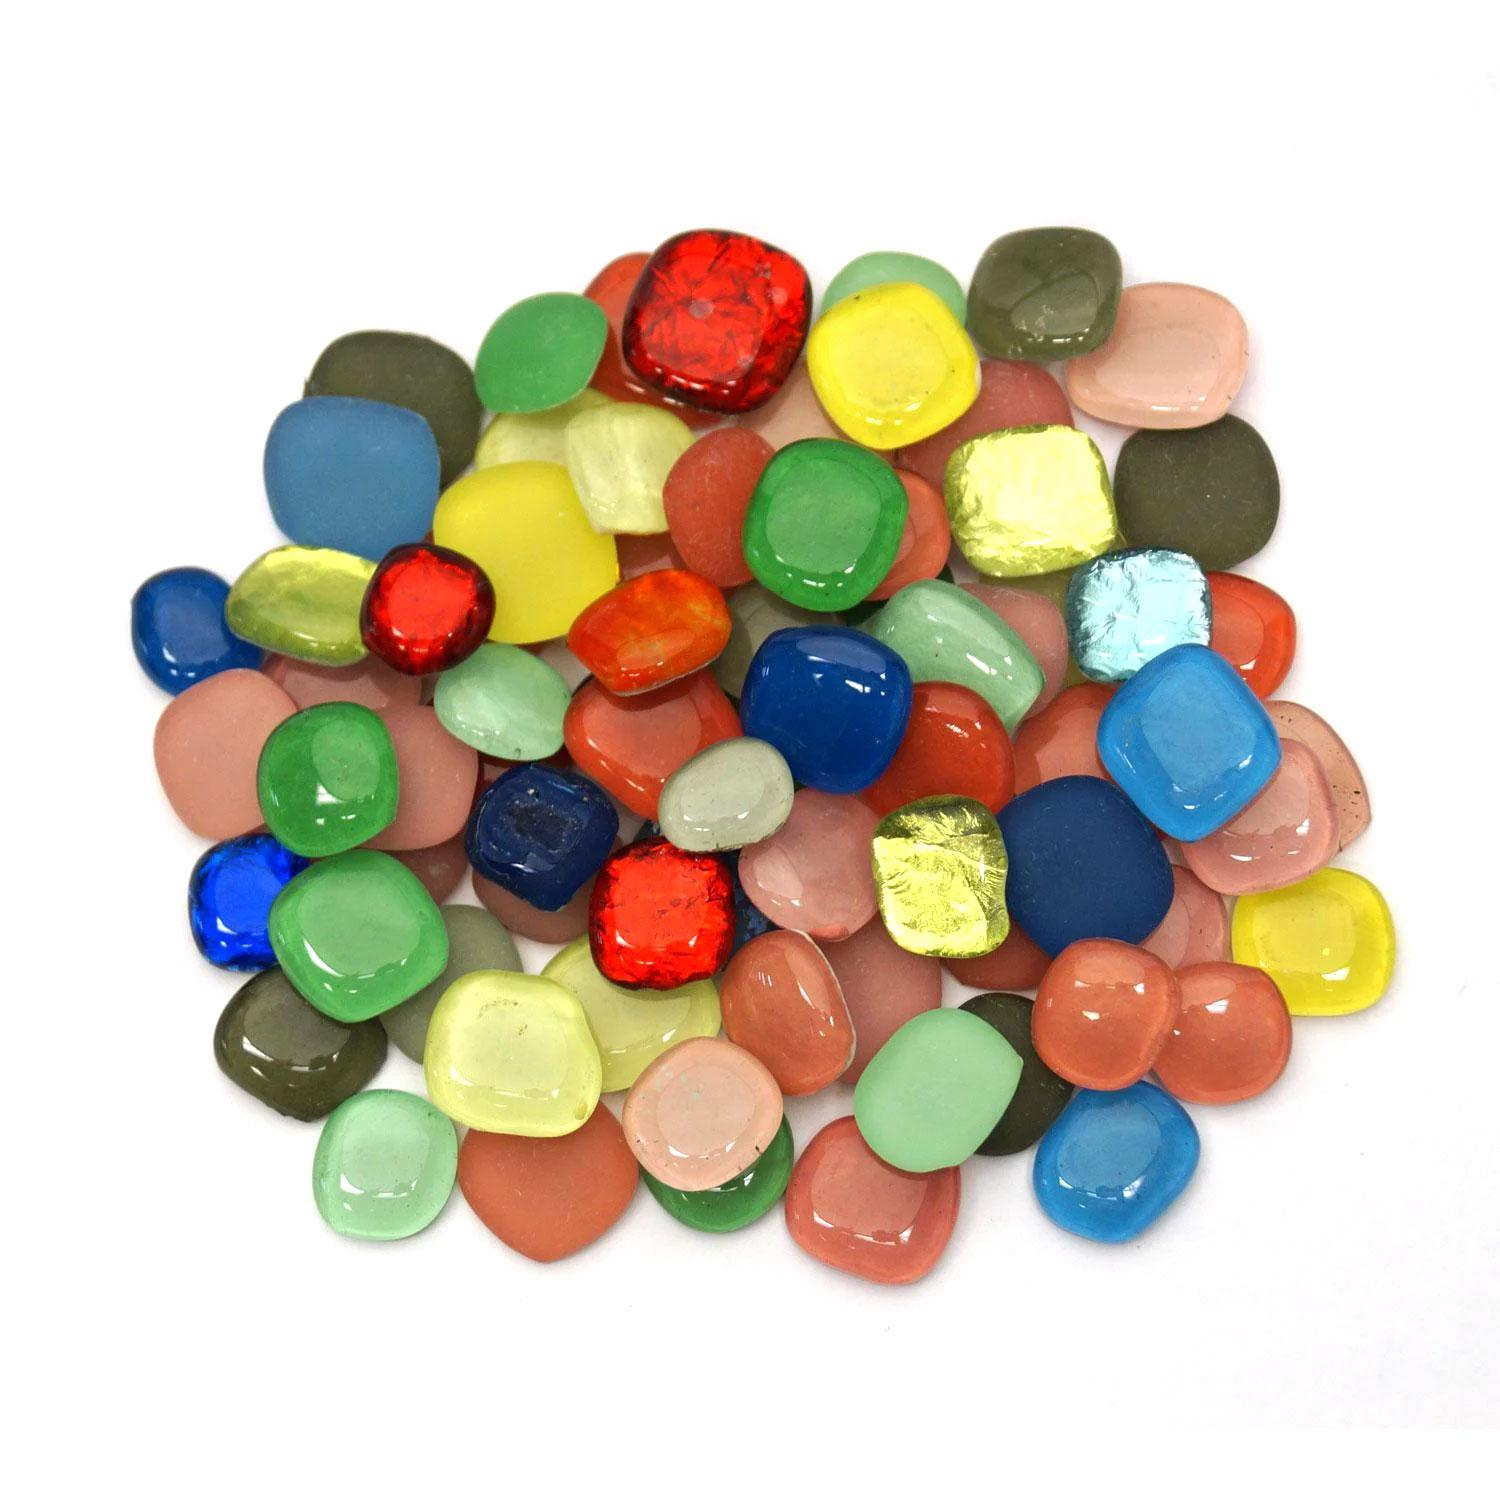 Royal Mix Pebbles - 1-1/2 Lb